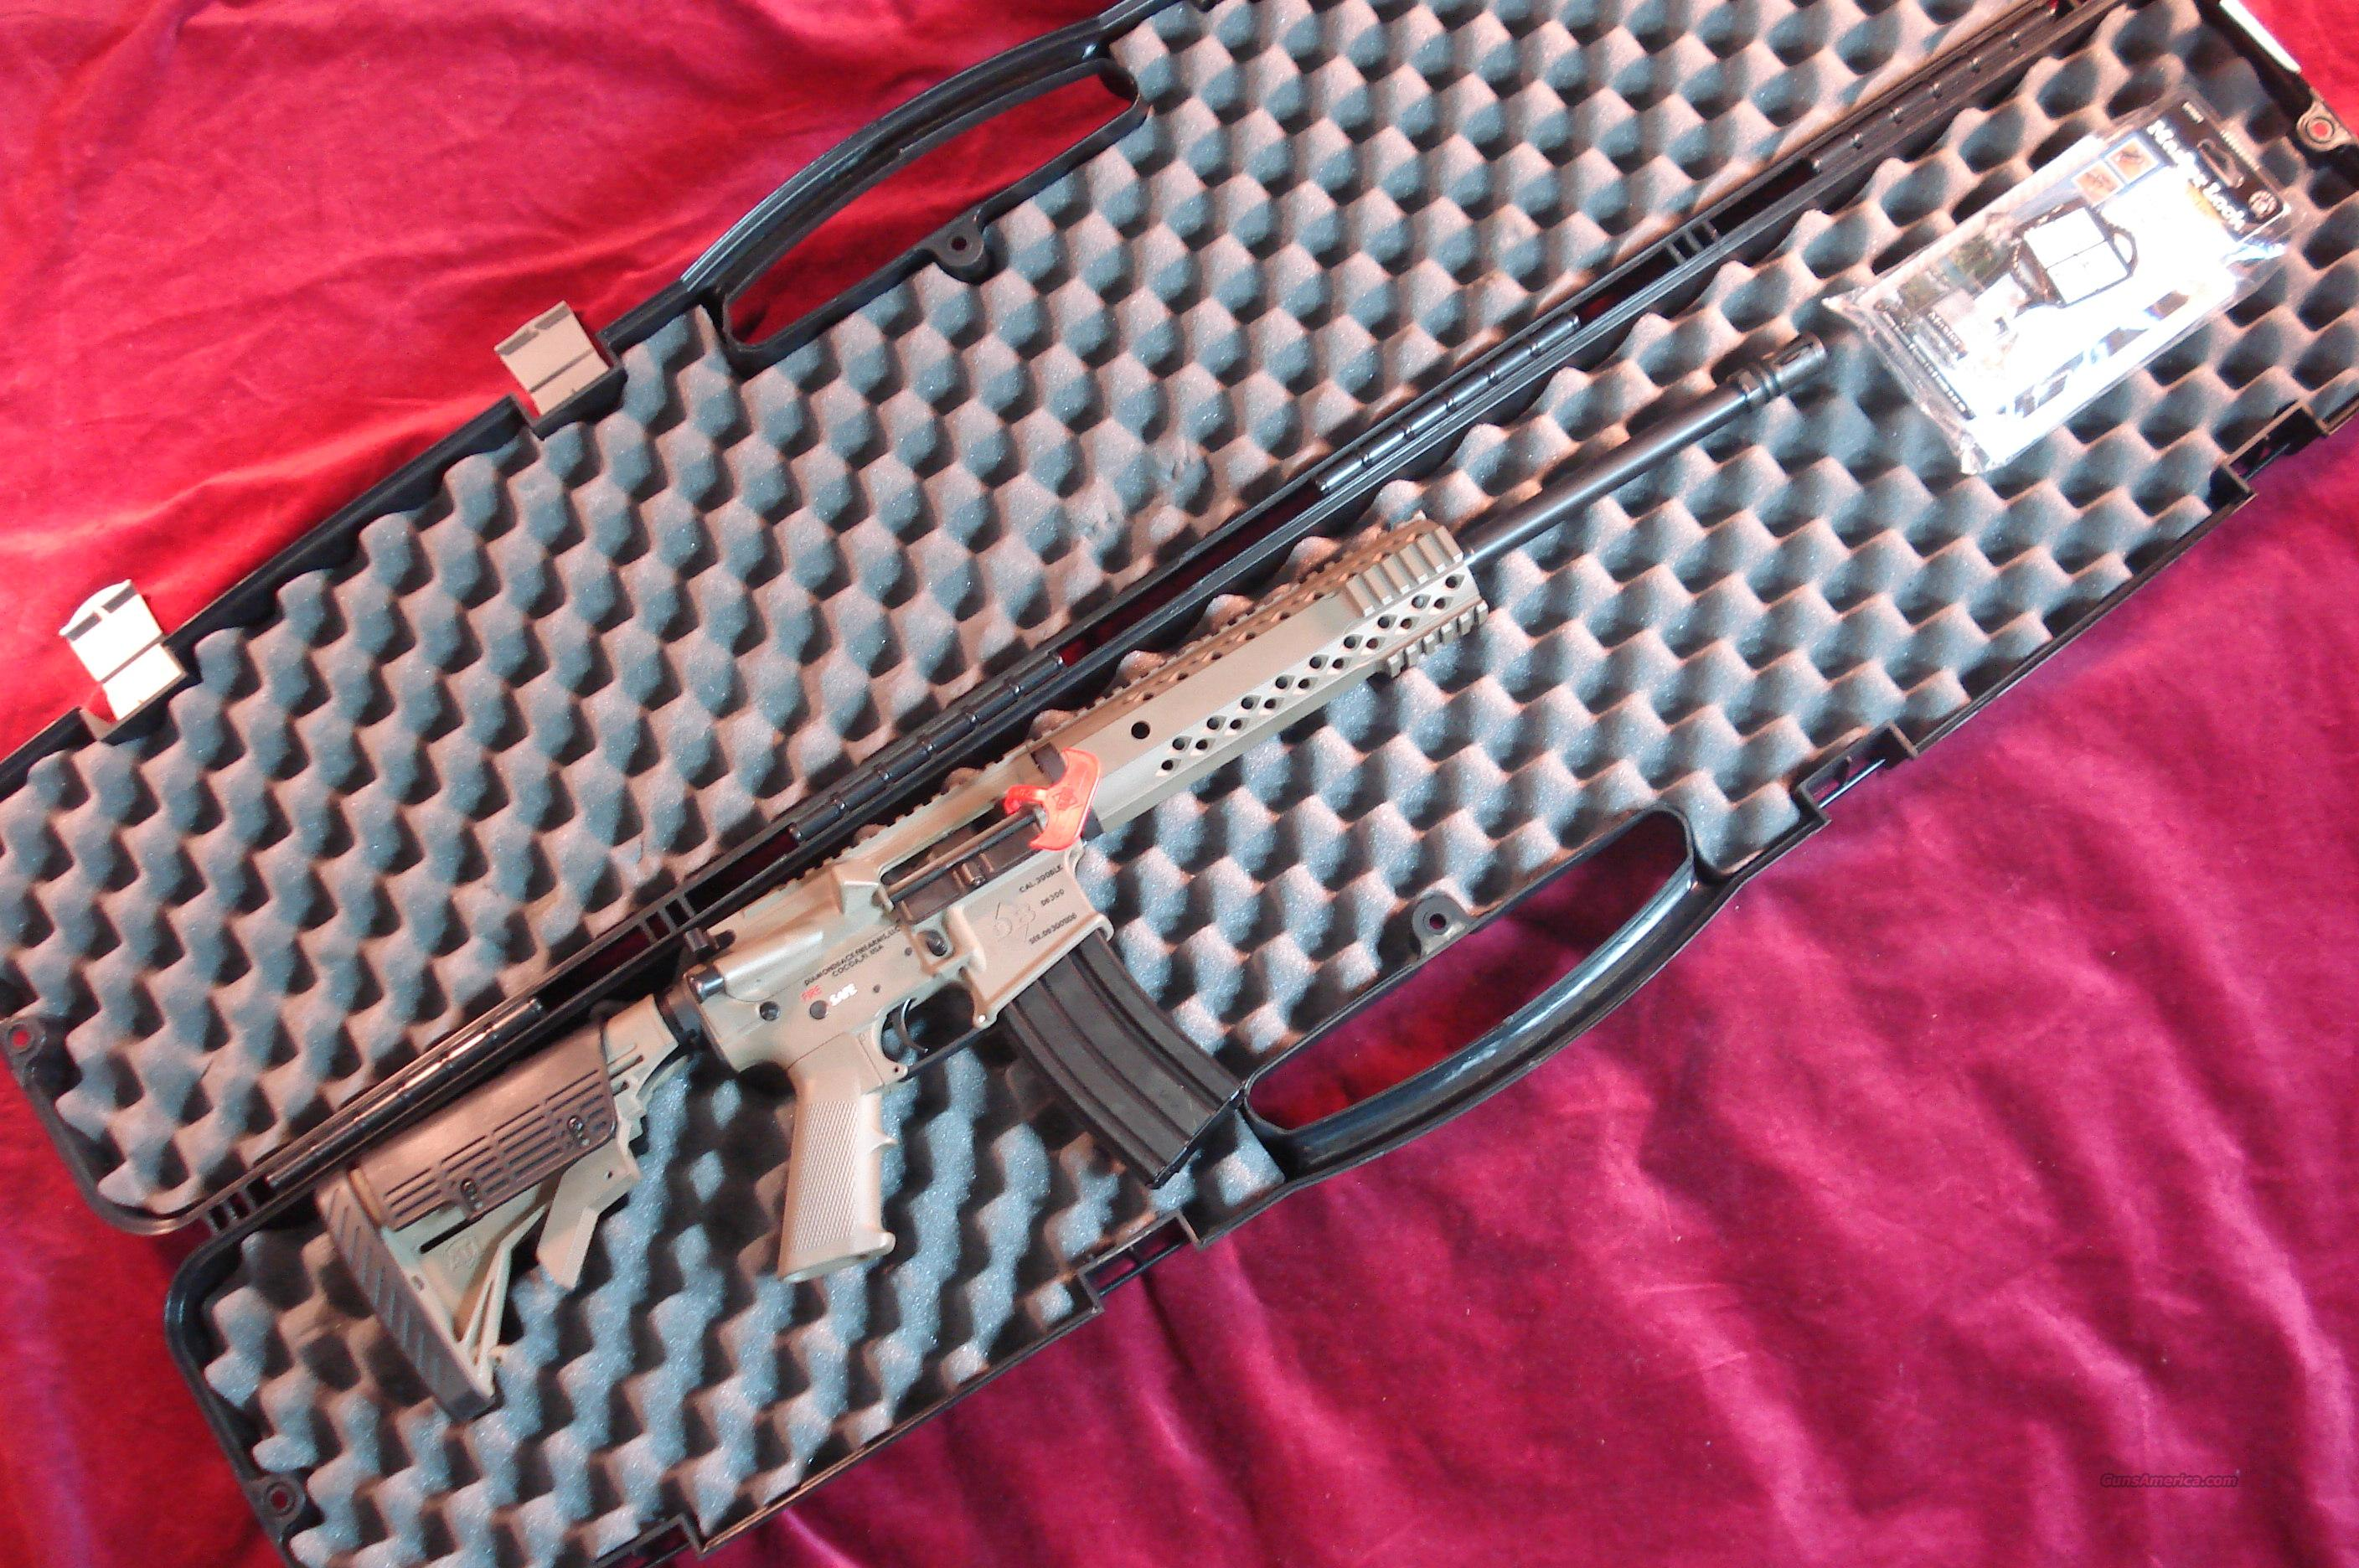 DIAMONDBACK DB-15 300 BLACKOUT CAL FDE A3 FLAT TOP NEW  Guns > Rifles > AR-15 Rifles - Small Manufacturers > Complete Rifle